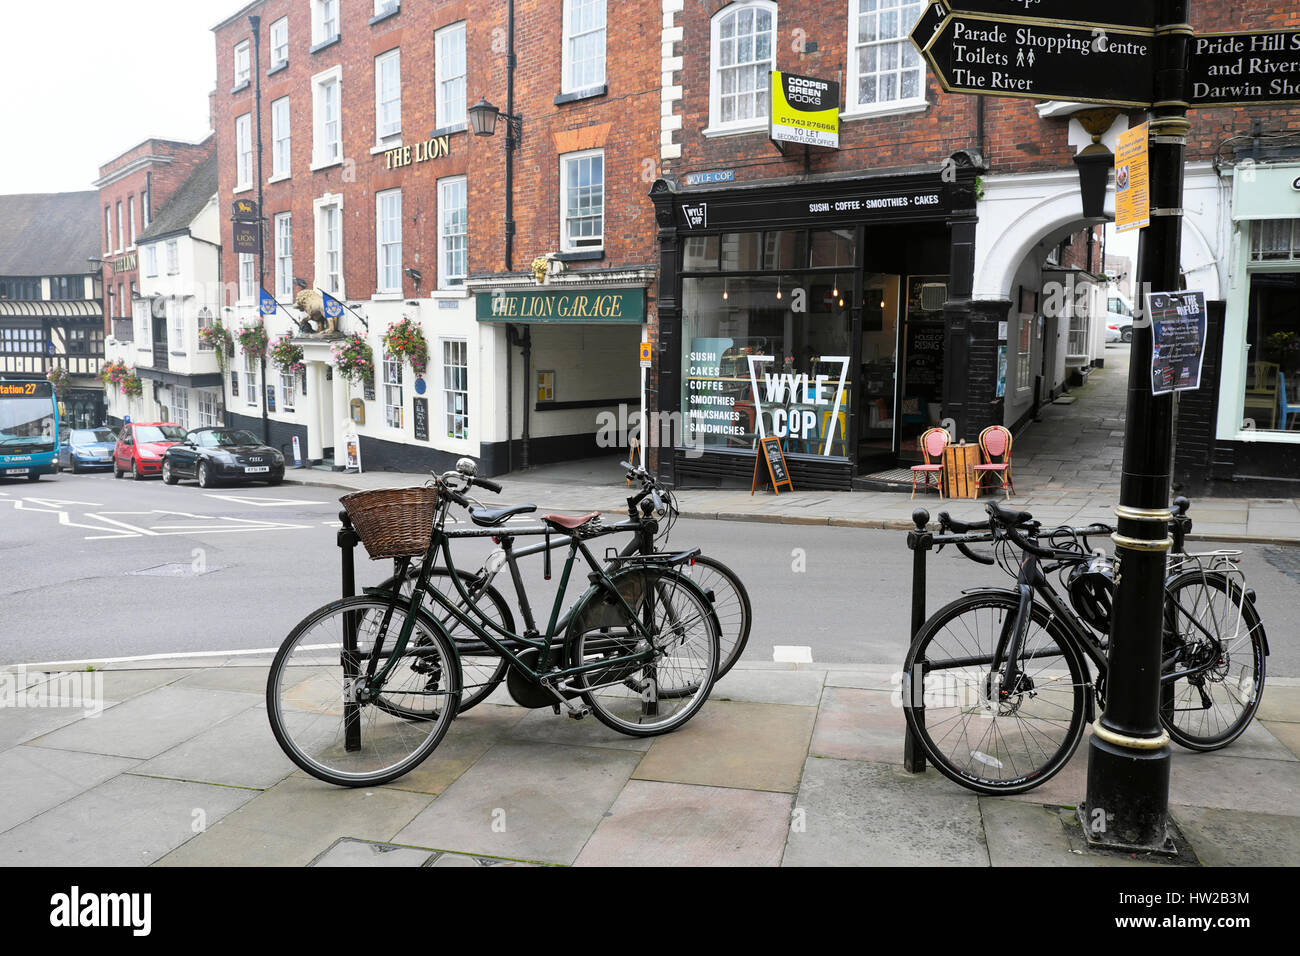 A view of Wyle Cop, bicycles and street signs in border  the town of Shrewsbury, Shropshire, UK  KATHY DEWITT - Stock Image